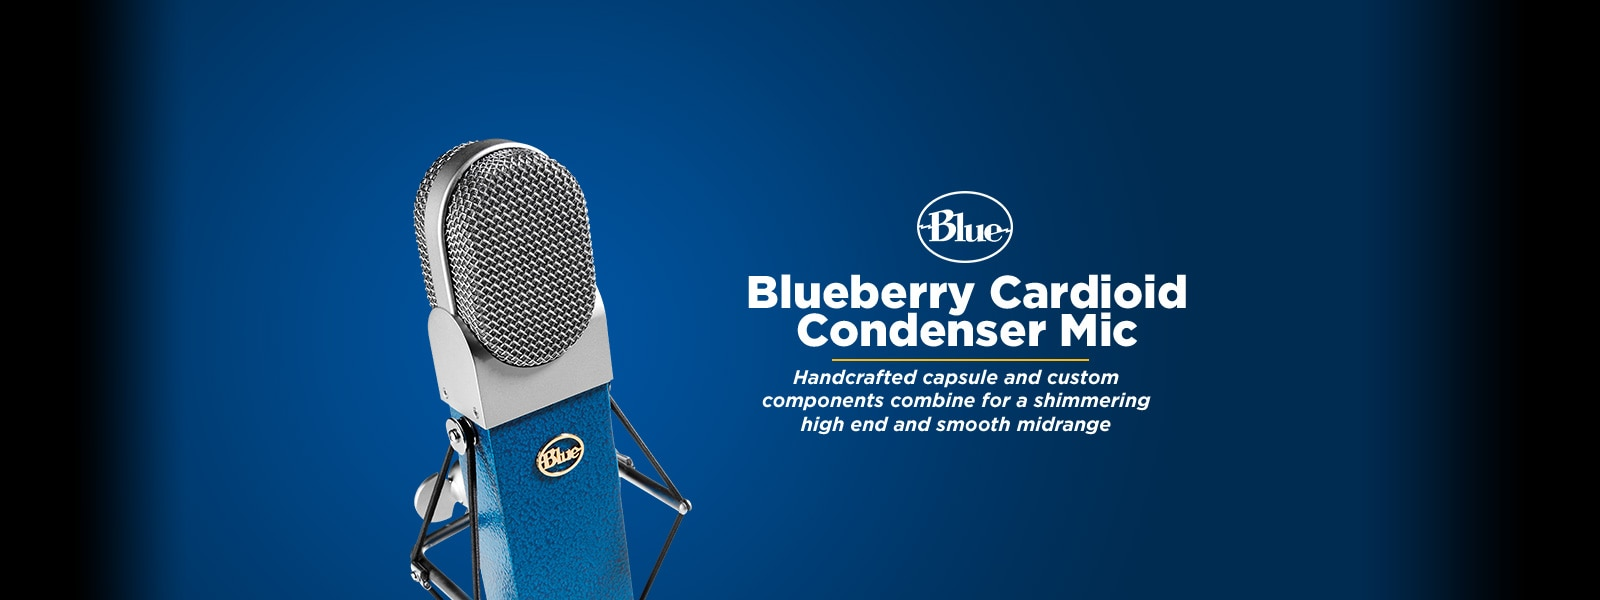 BLUE�Blueberry Cardioid Condenser Microphone